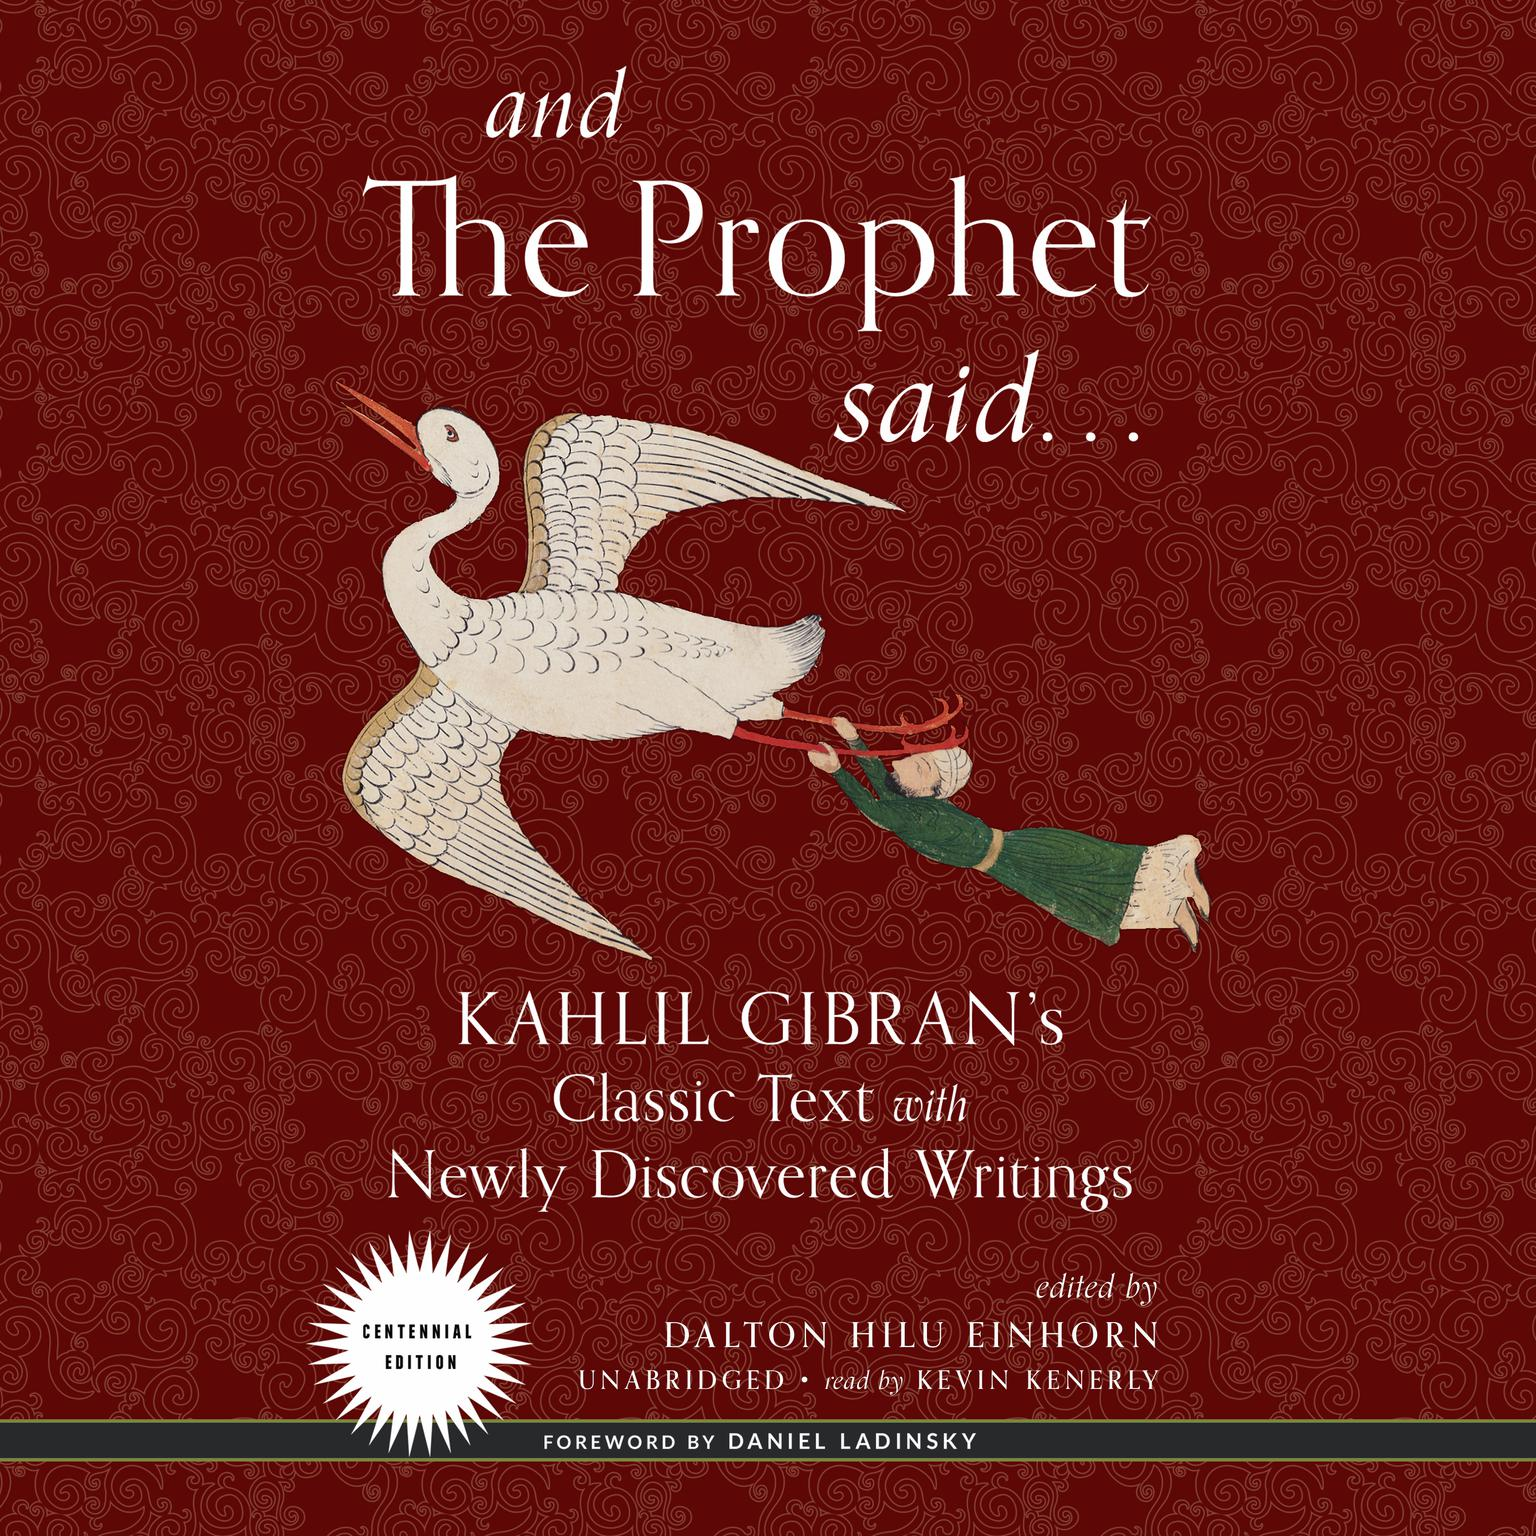 And the Prophet Said: Kahlil Gibran's Classic Text with Newly Discovered Writings Audiobook, by Kahlil Gibran